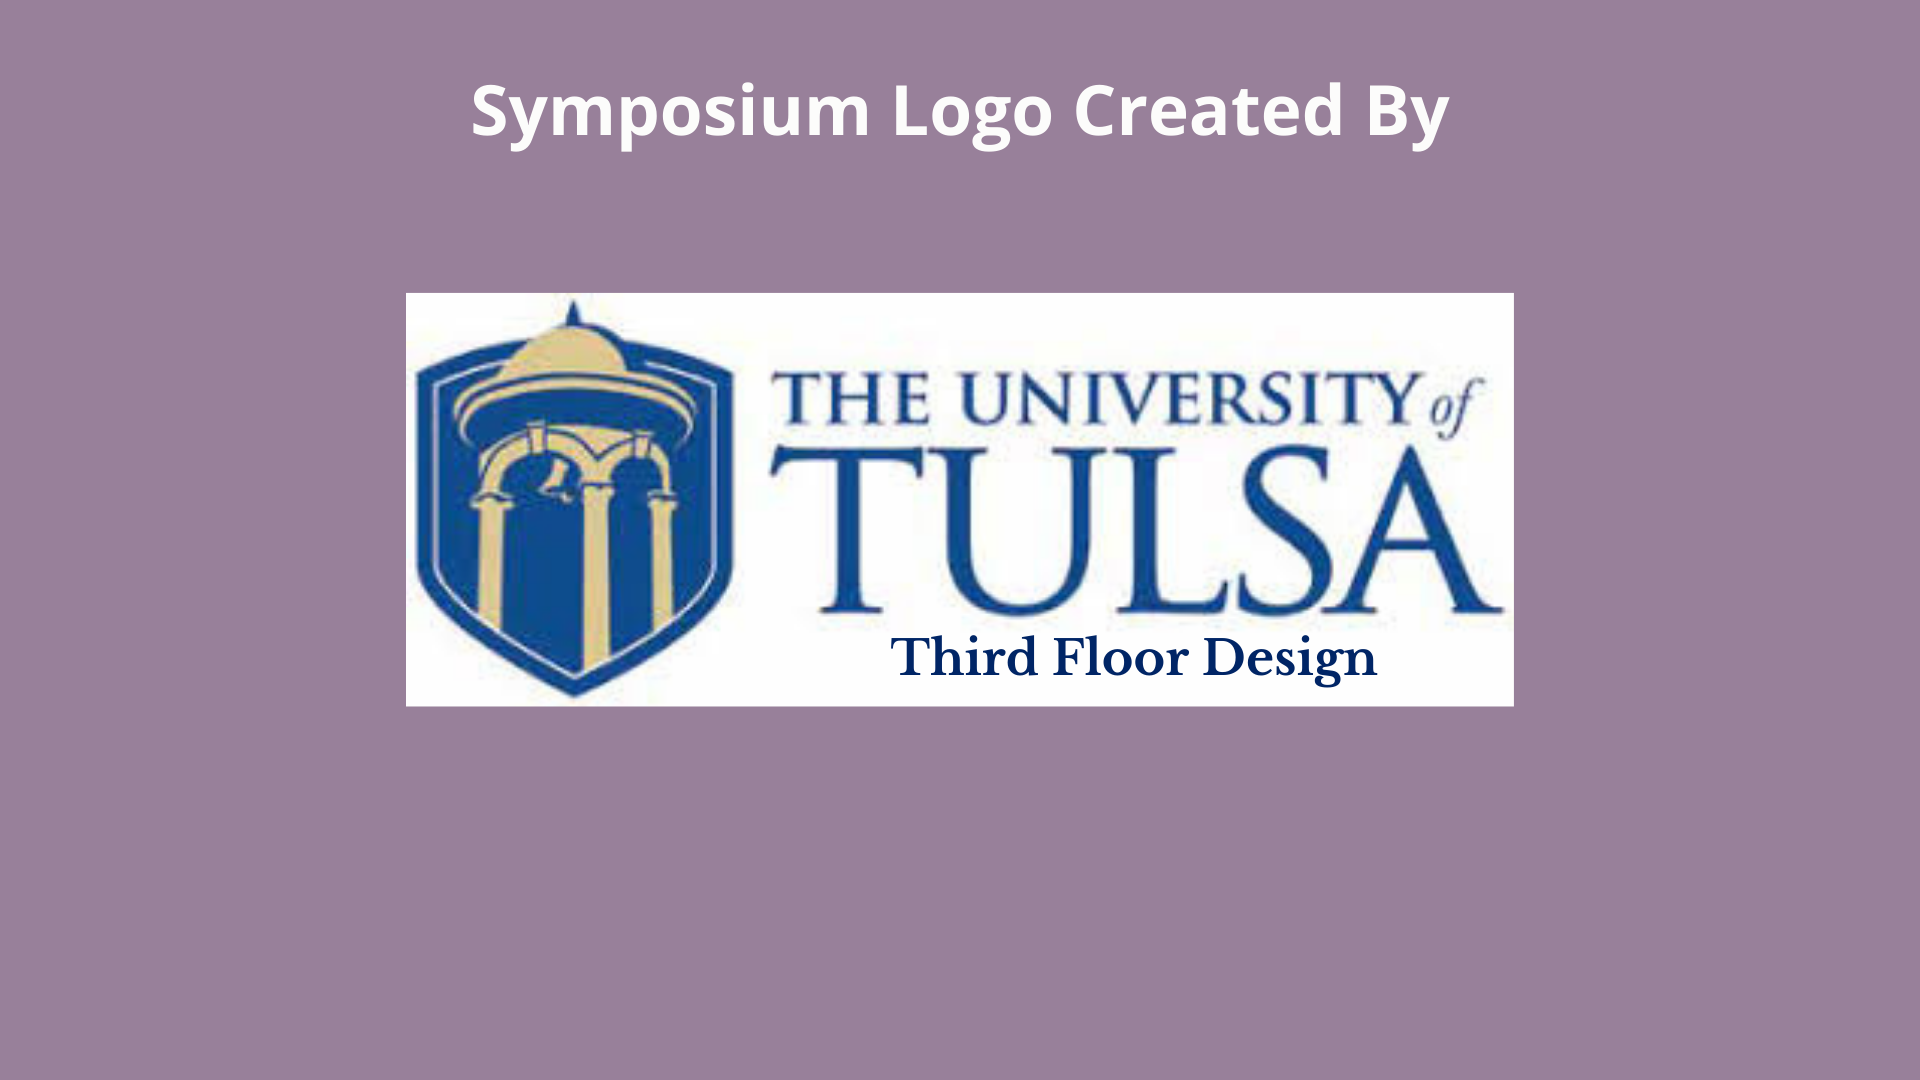 University of Tulsa - Third Floor Design